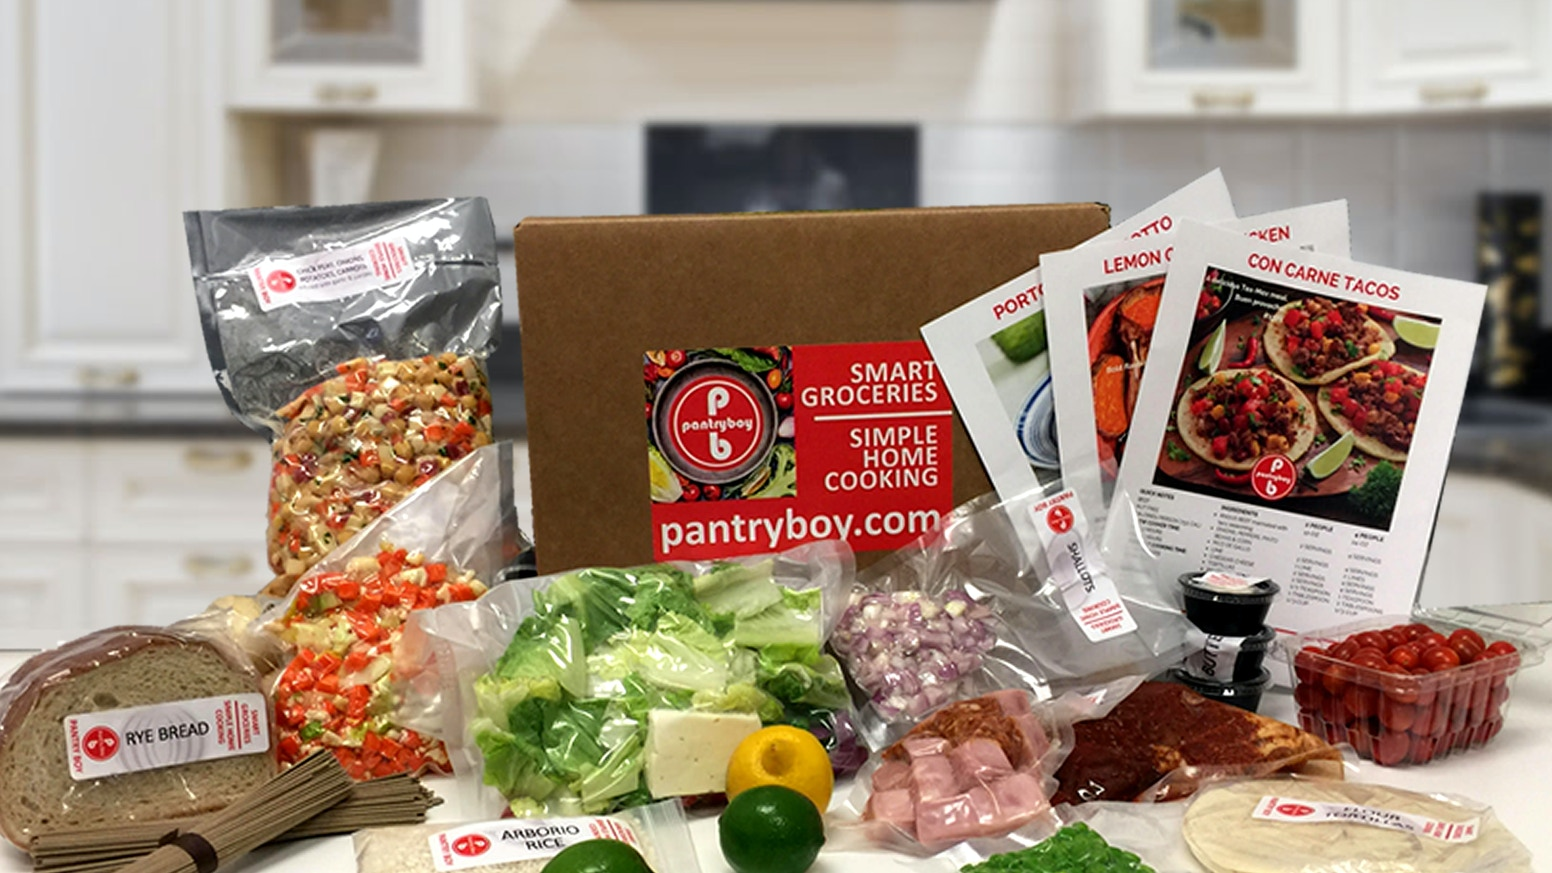 Too busy to shop & cook? Prepared ingredients for delicious recipes delivered to your doorstep. Always free shipping.